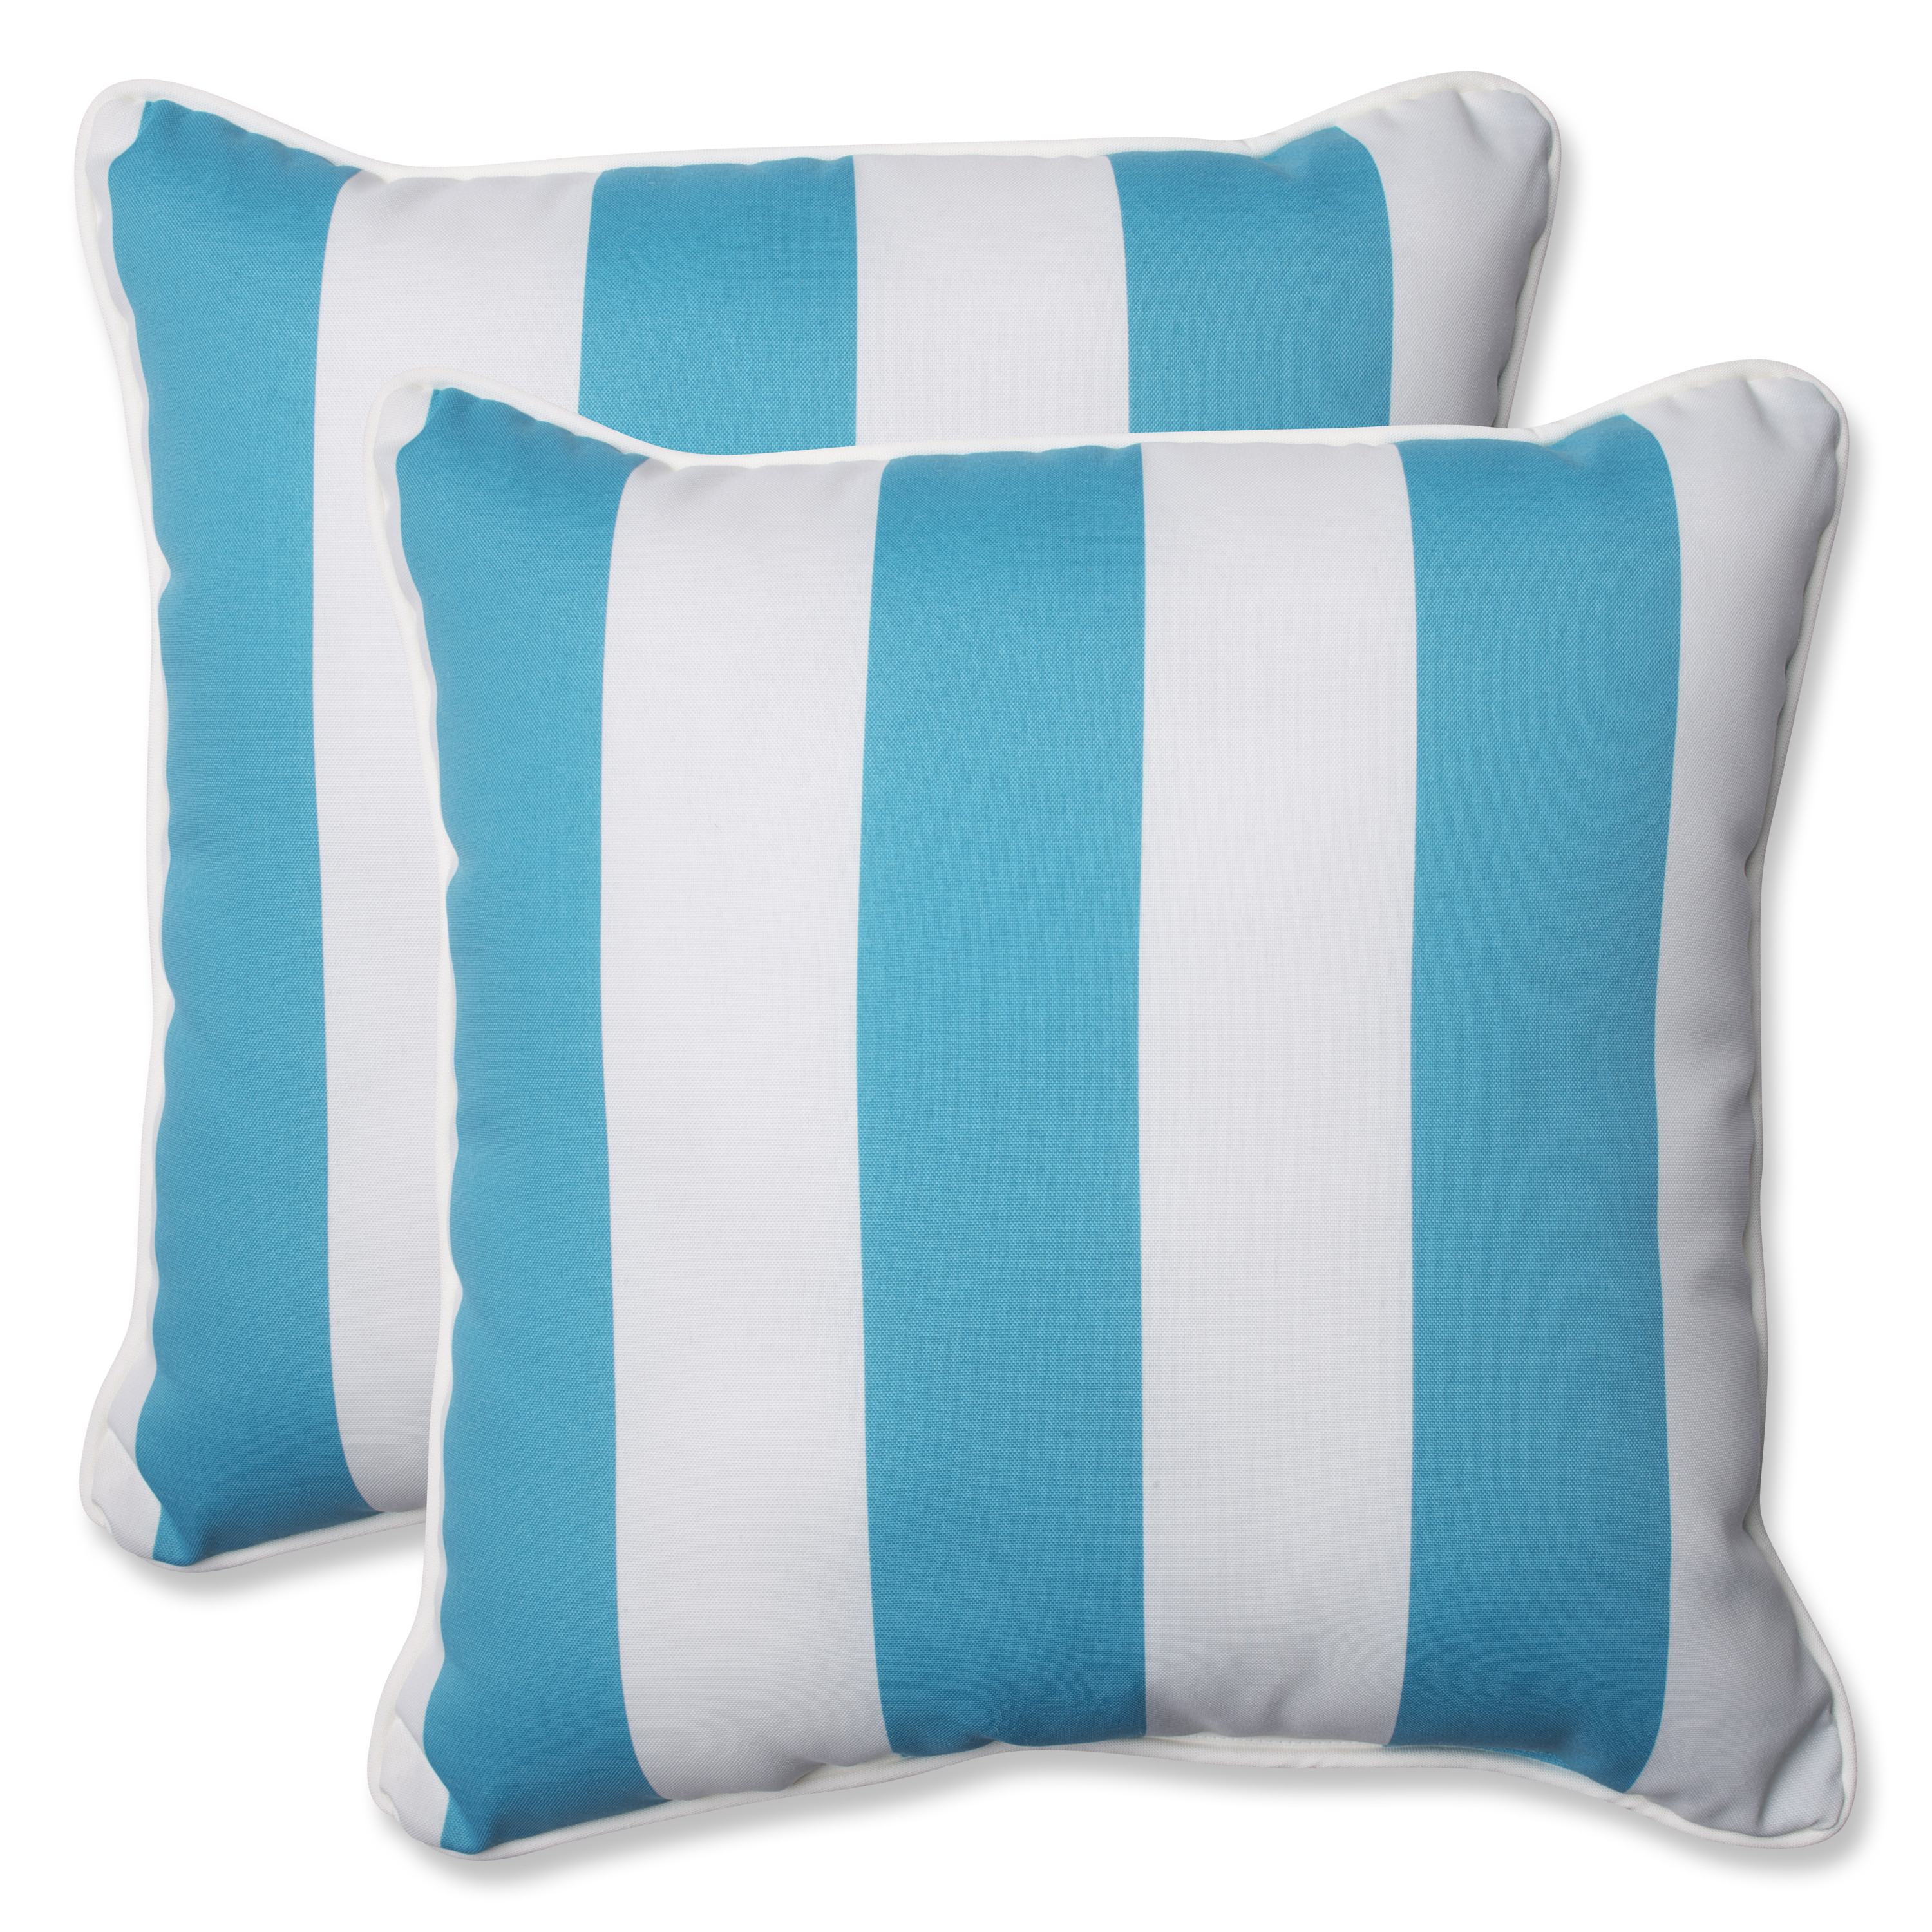 indooroutdoor outdoor ideas target barn throw marvelous anchor lowes pottery pillows cheap patio pillow decorative stripe and walmart cushions navy